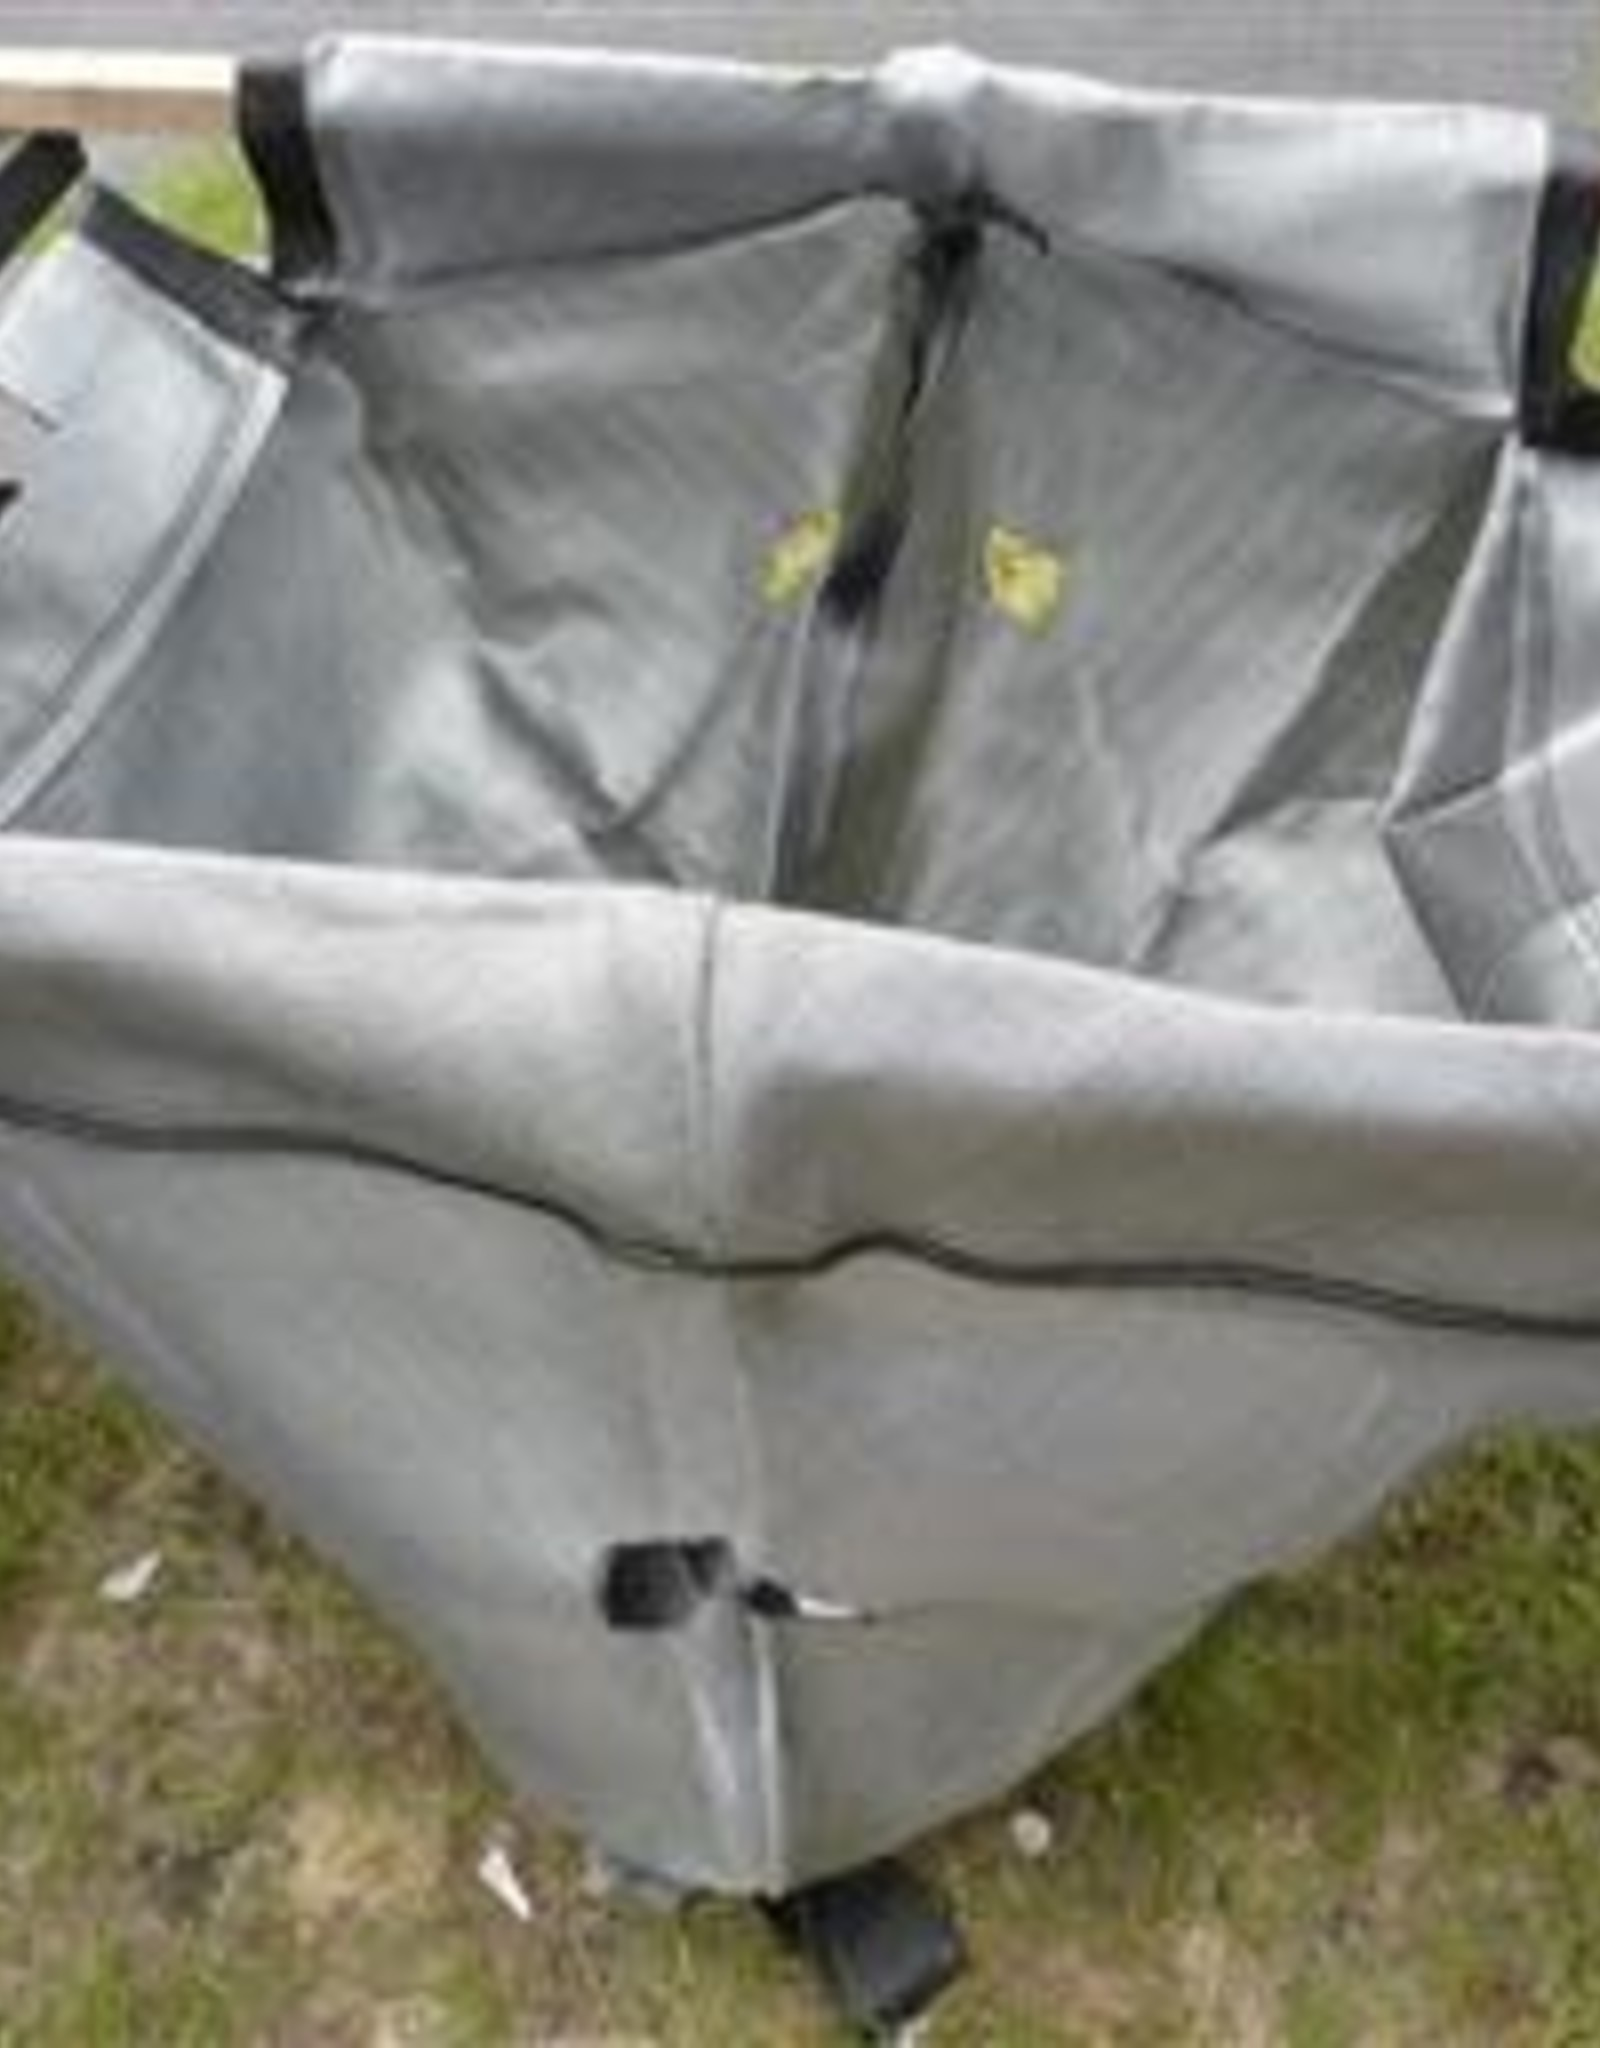 The Grate Bag